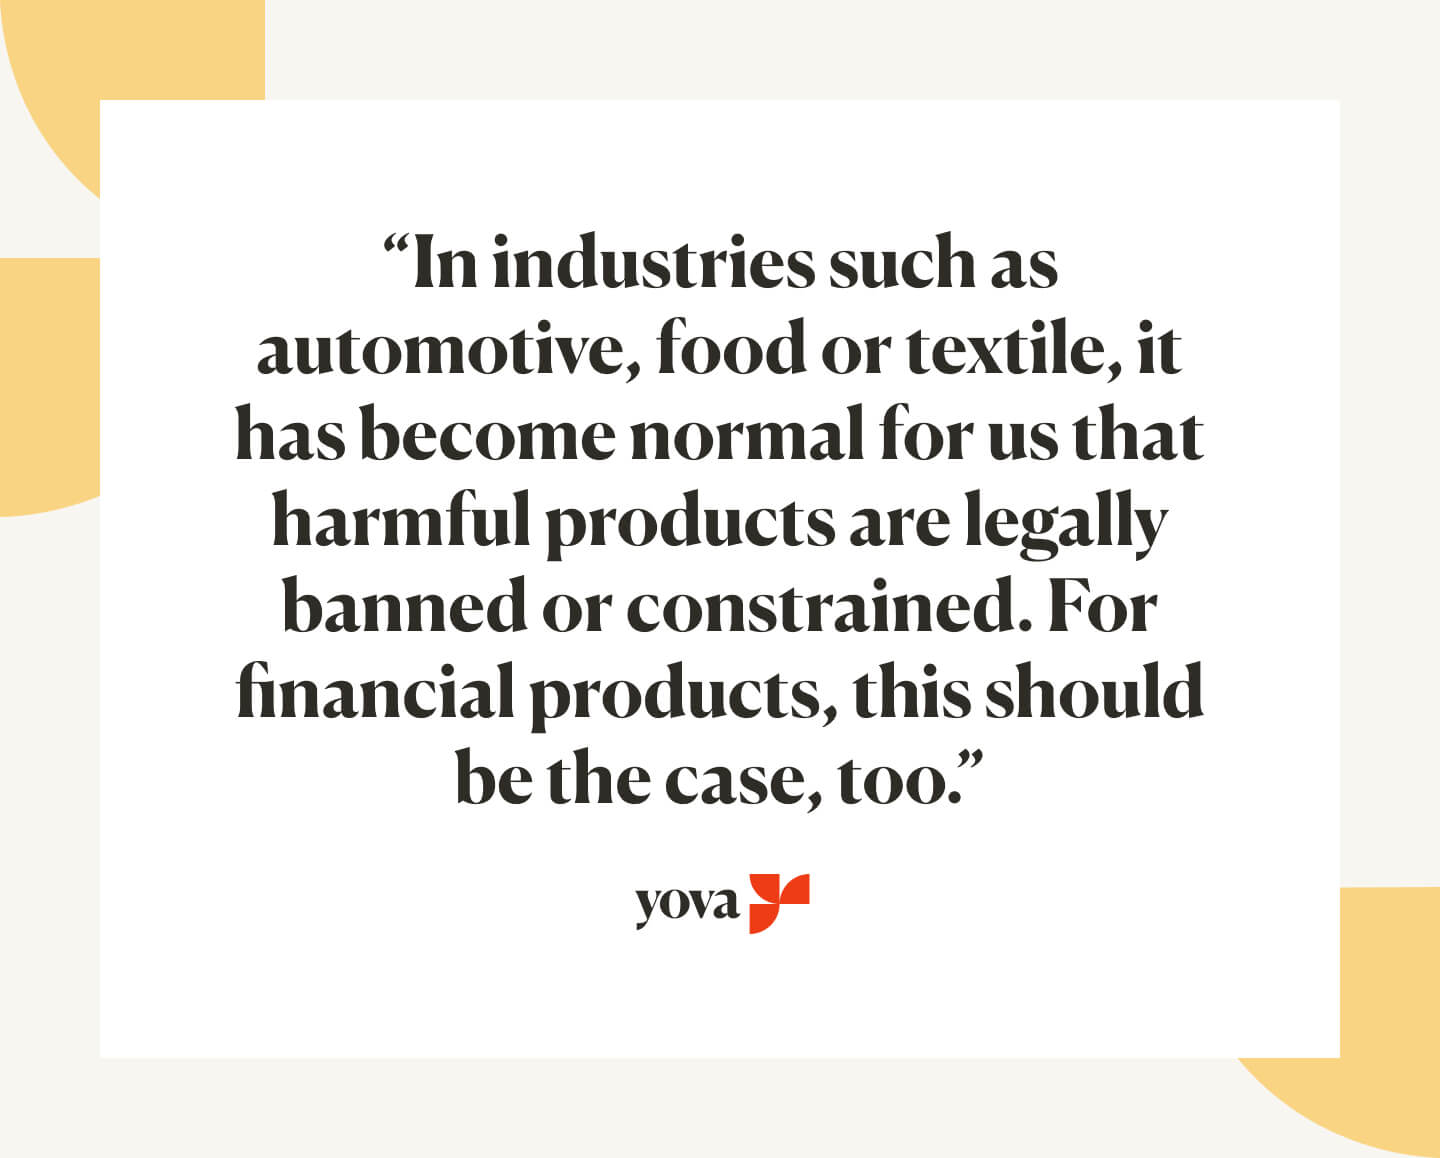 Financial products need to be regulated